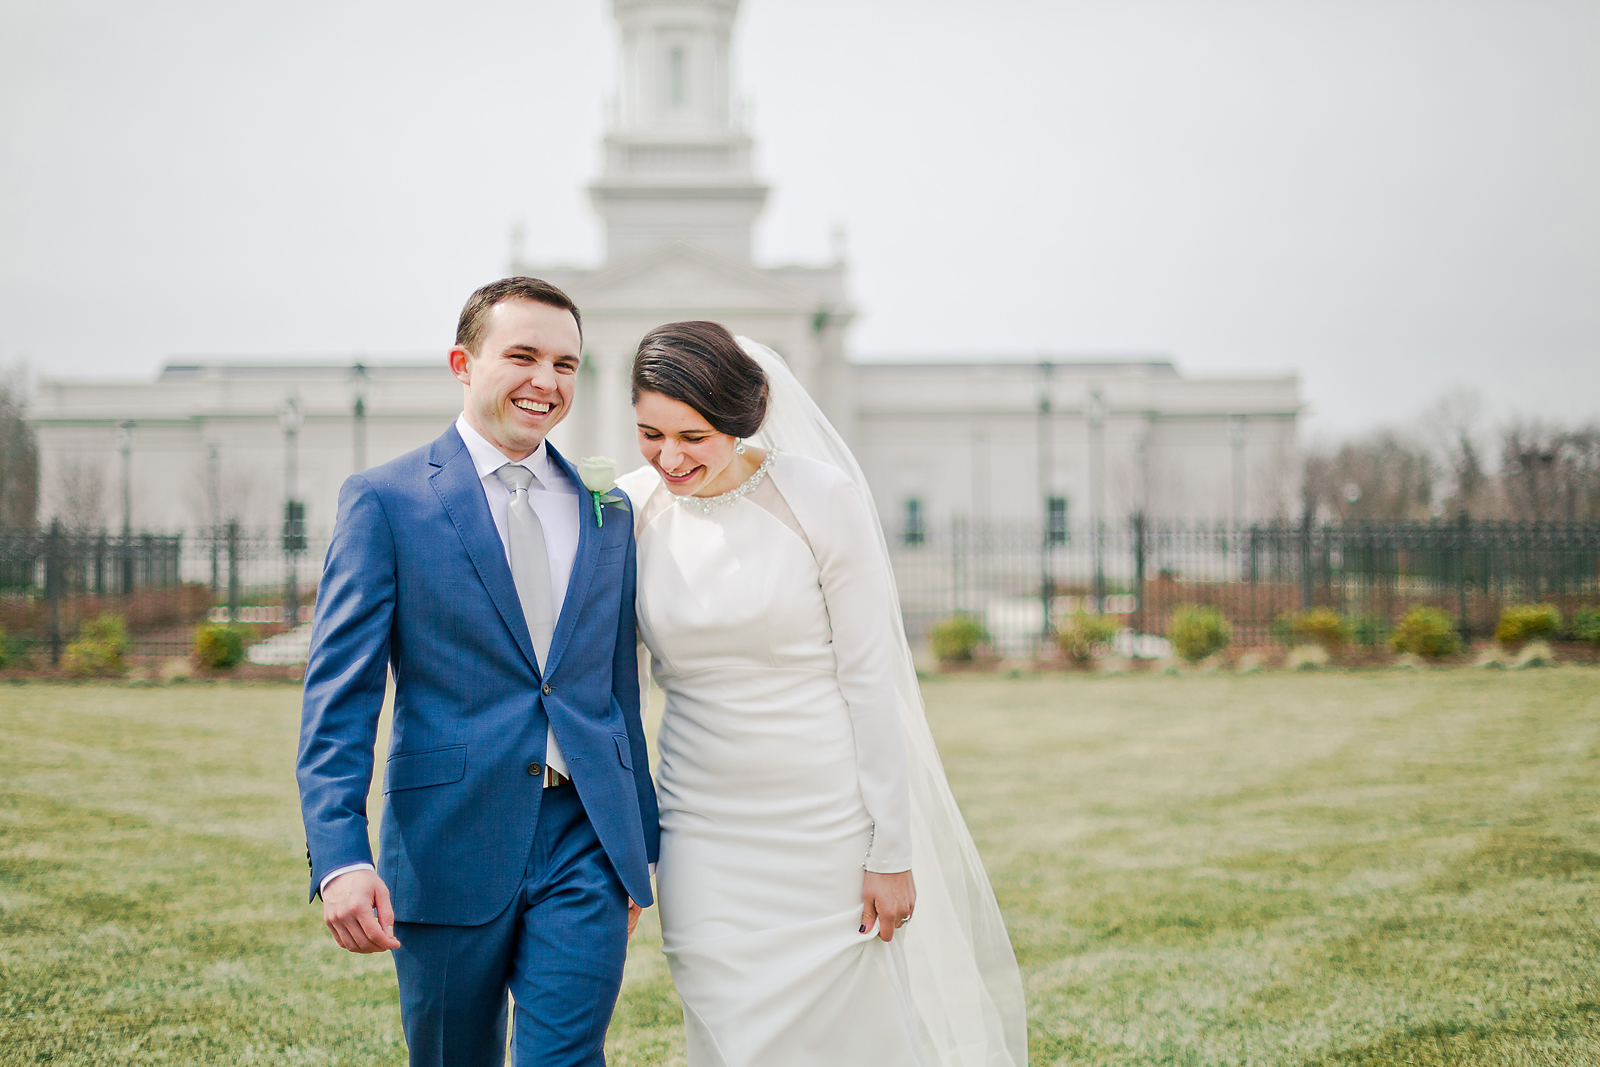 lds_hartford_temple_wedding_015.jpg